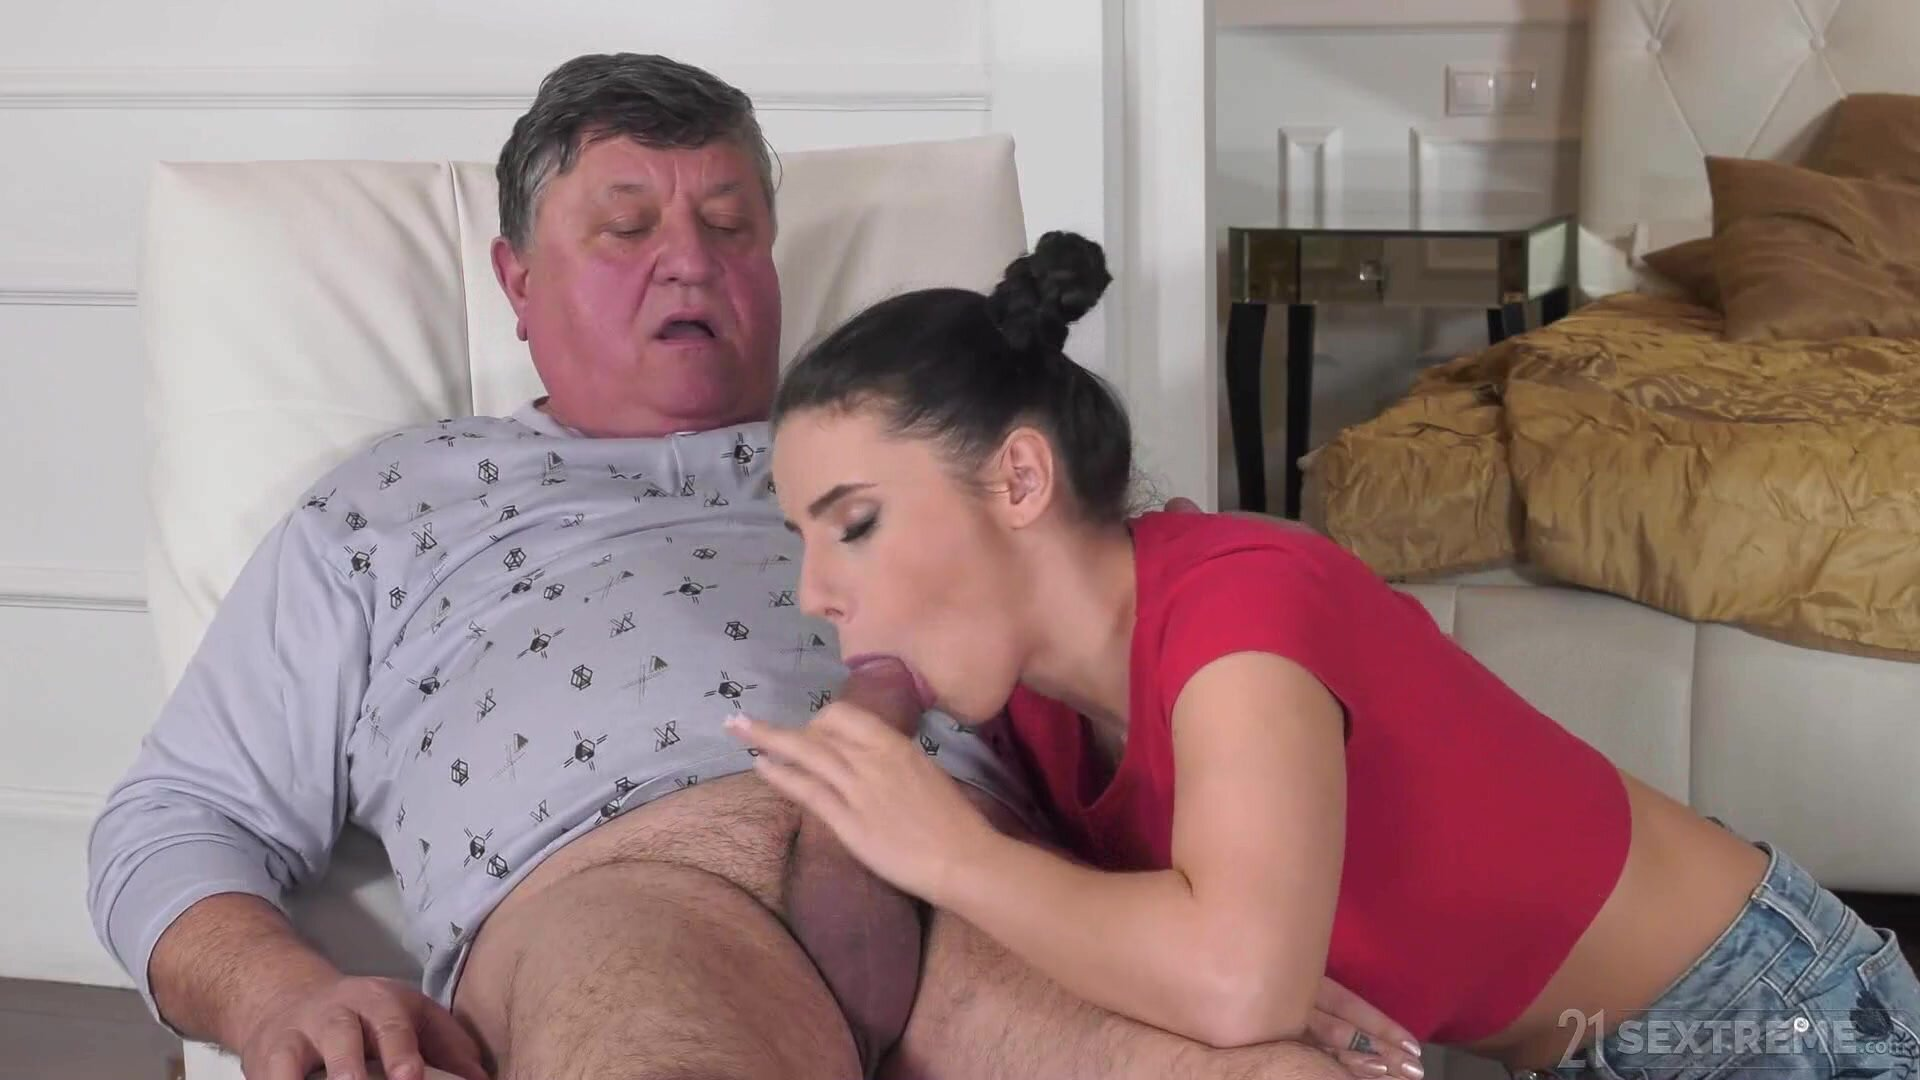 Sexy Housekeeper Takes Good Care Of An Old Man